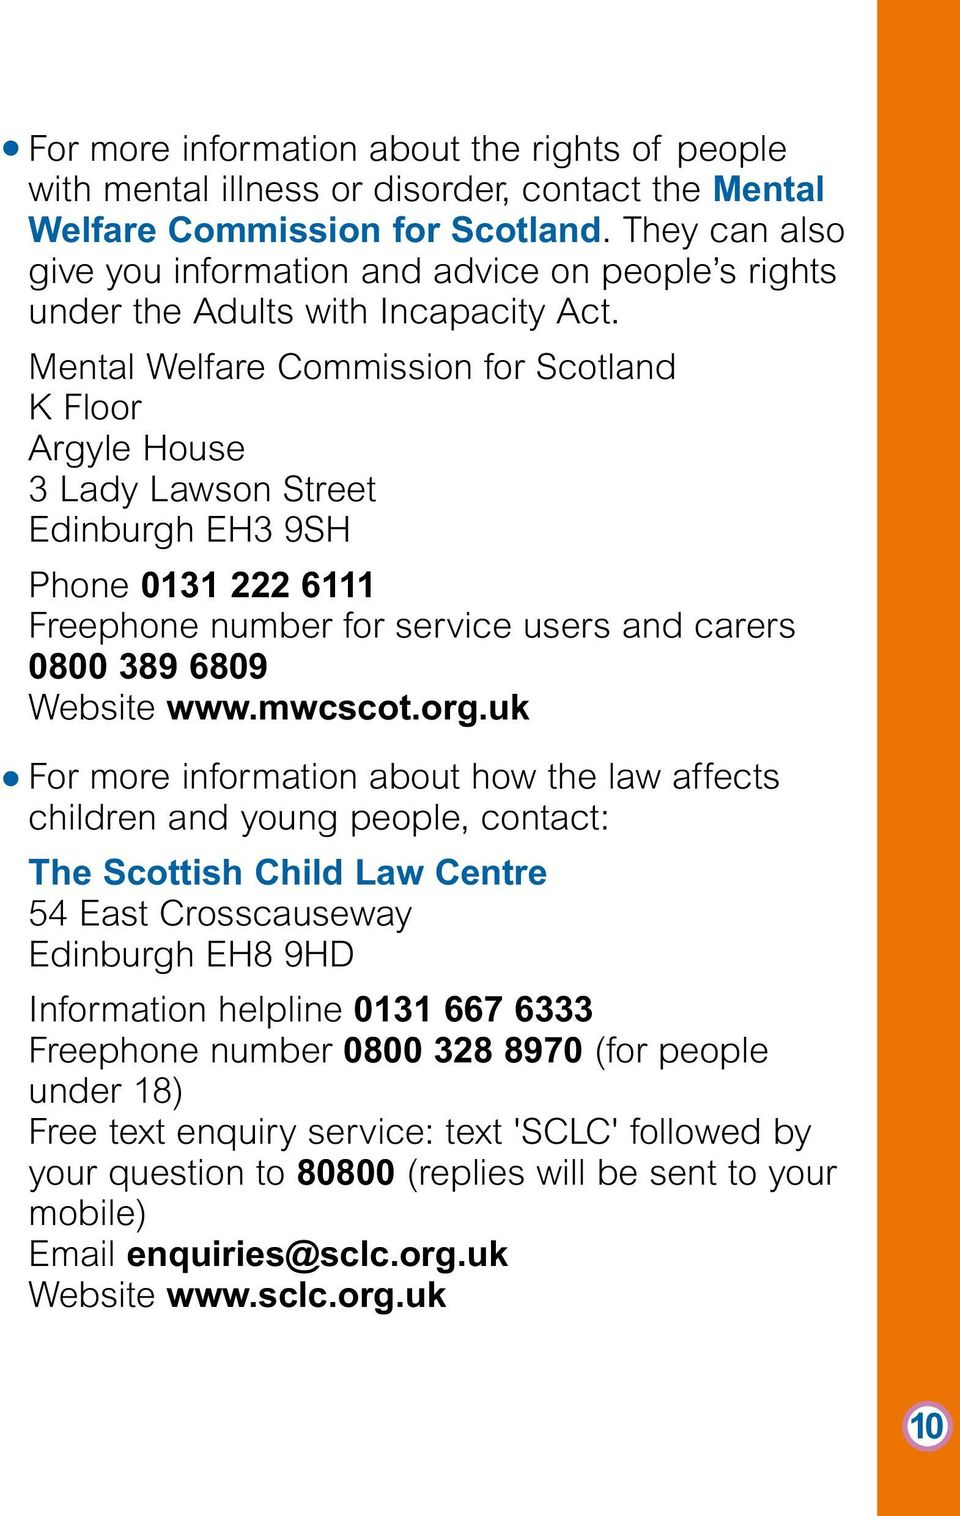 Mental Welfare Commission for Scotland K Floor Argyle House 3 Lady Lawson Street Edinburgh EH3 9SH Phone 0131 222 6111 Freephone number for service users and carers 0800 389 6809 Website www.mwcscot.